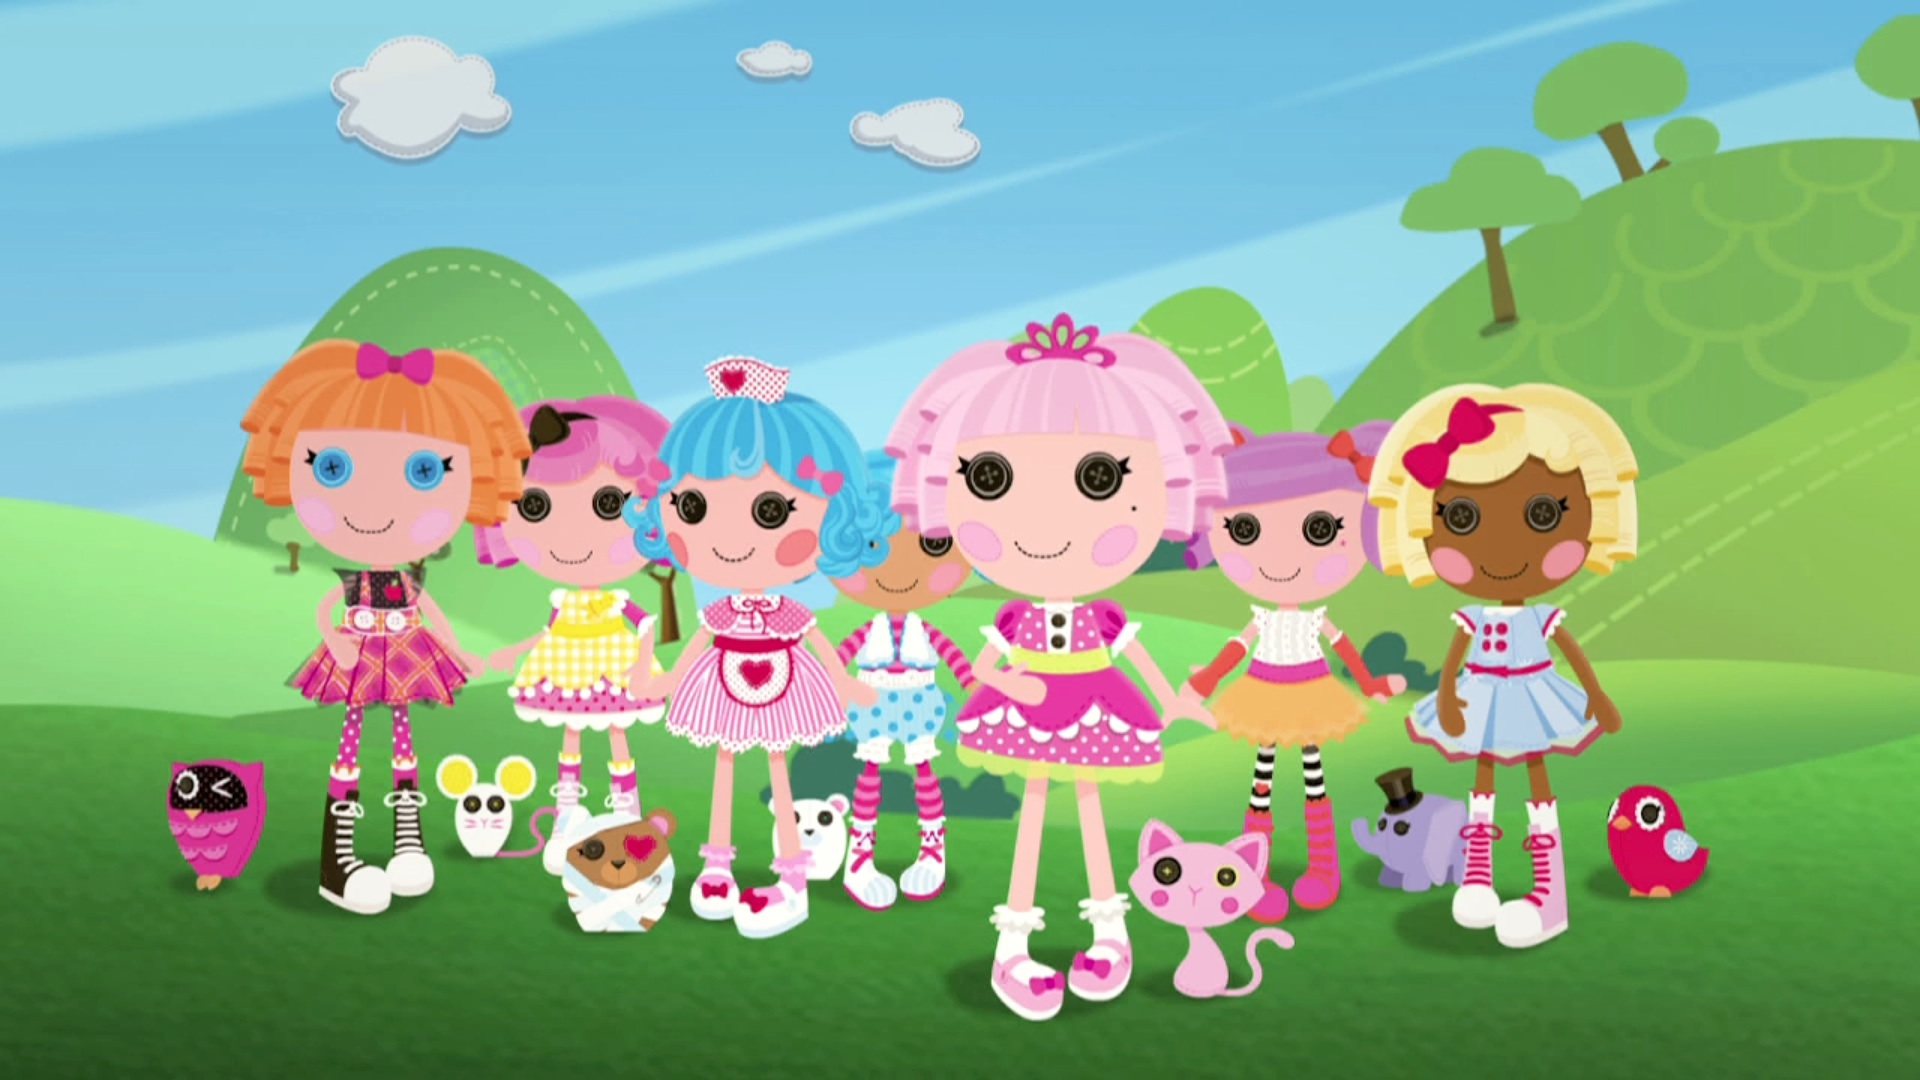 LaLaloopsy Wallpaper